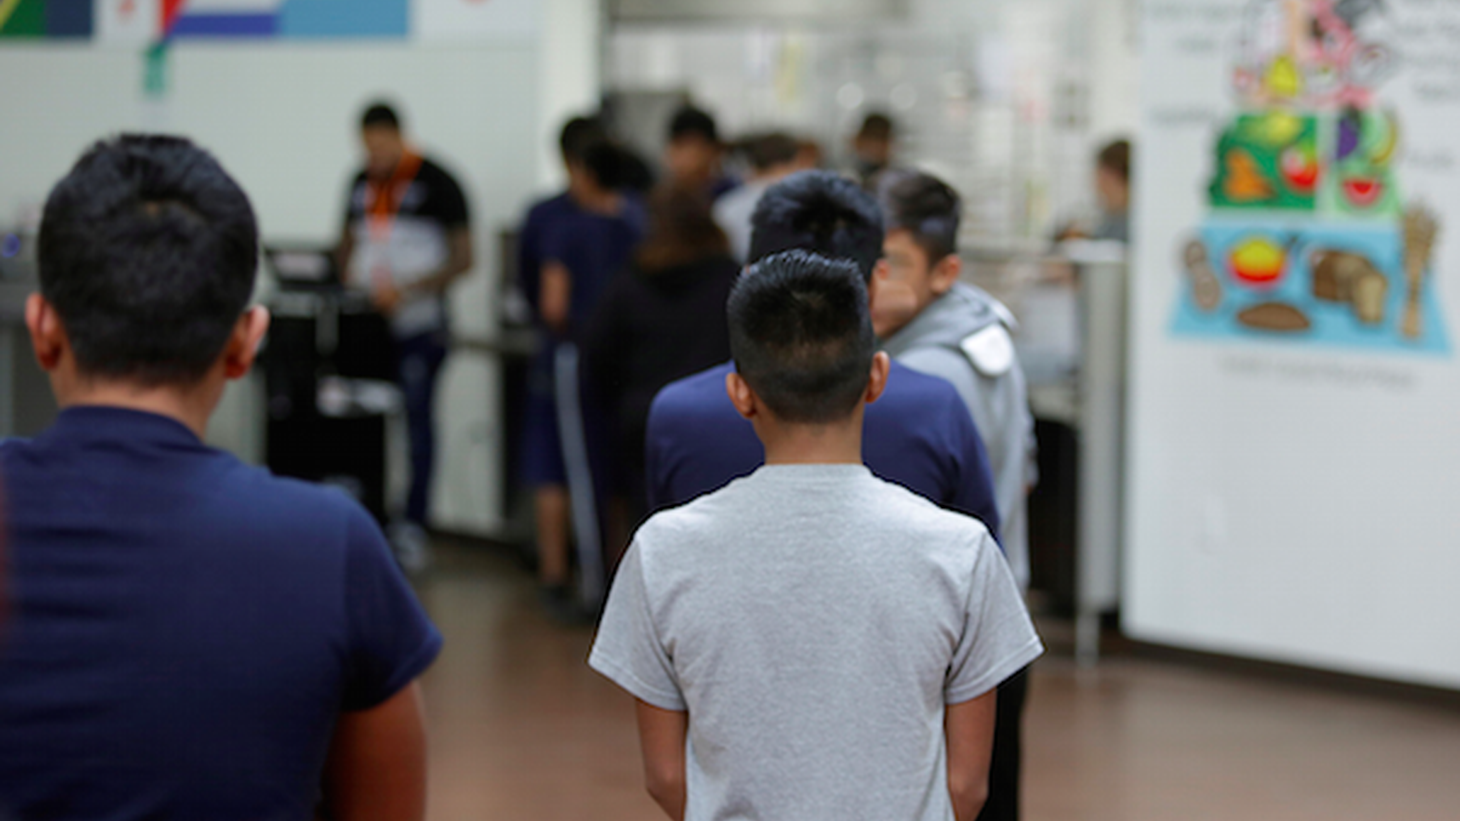 """President Trump's """"zero tolerance"""" policy has led to more than 1300 kids being separated from their families at the border. Many of those kids end up in government shelters."""